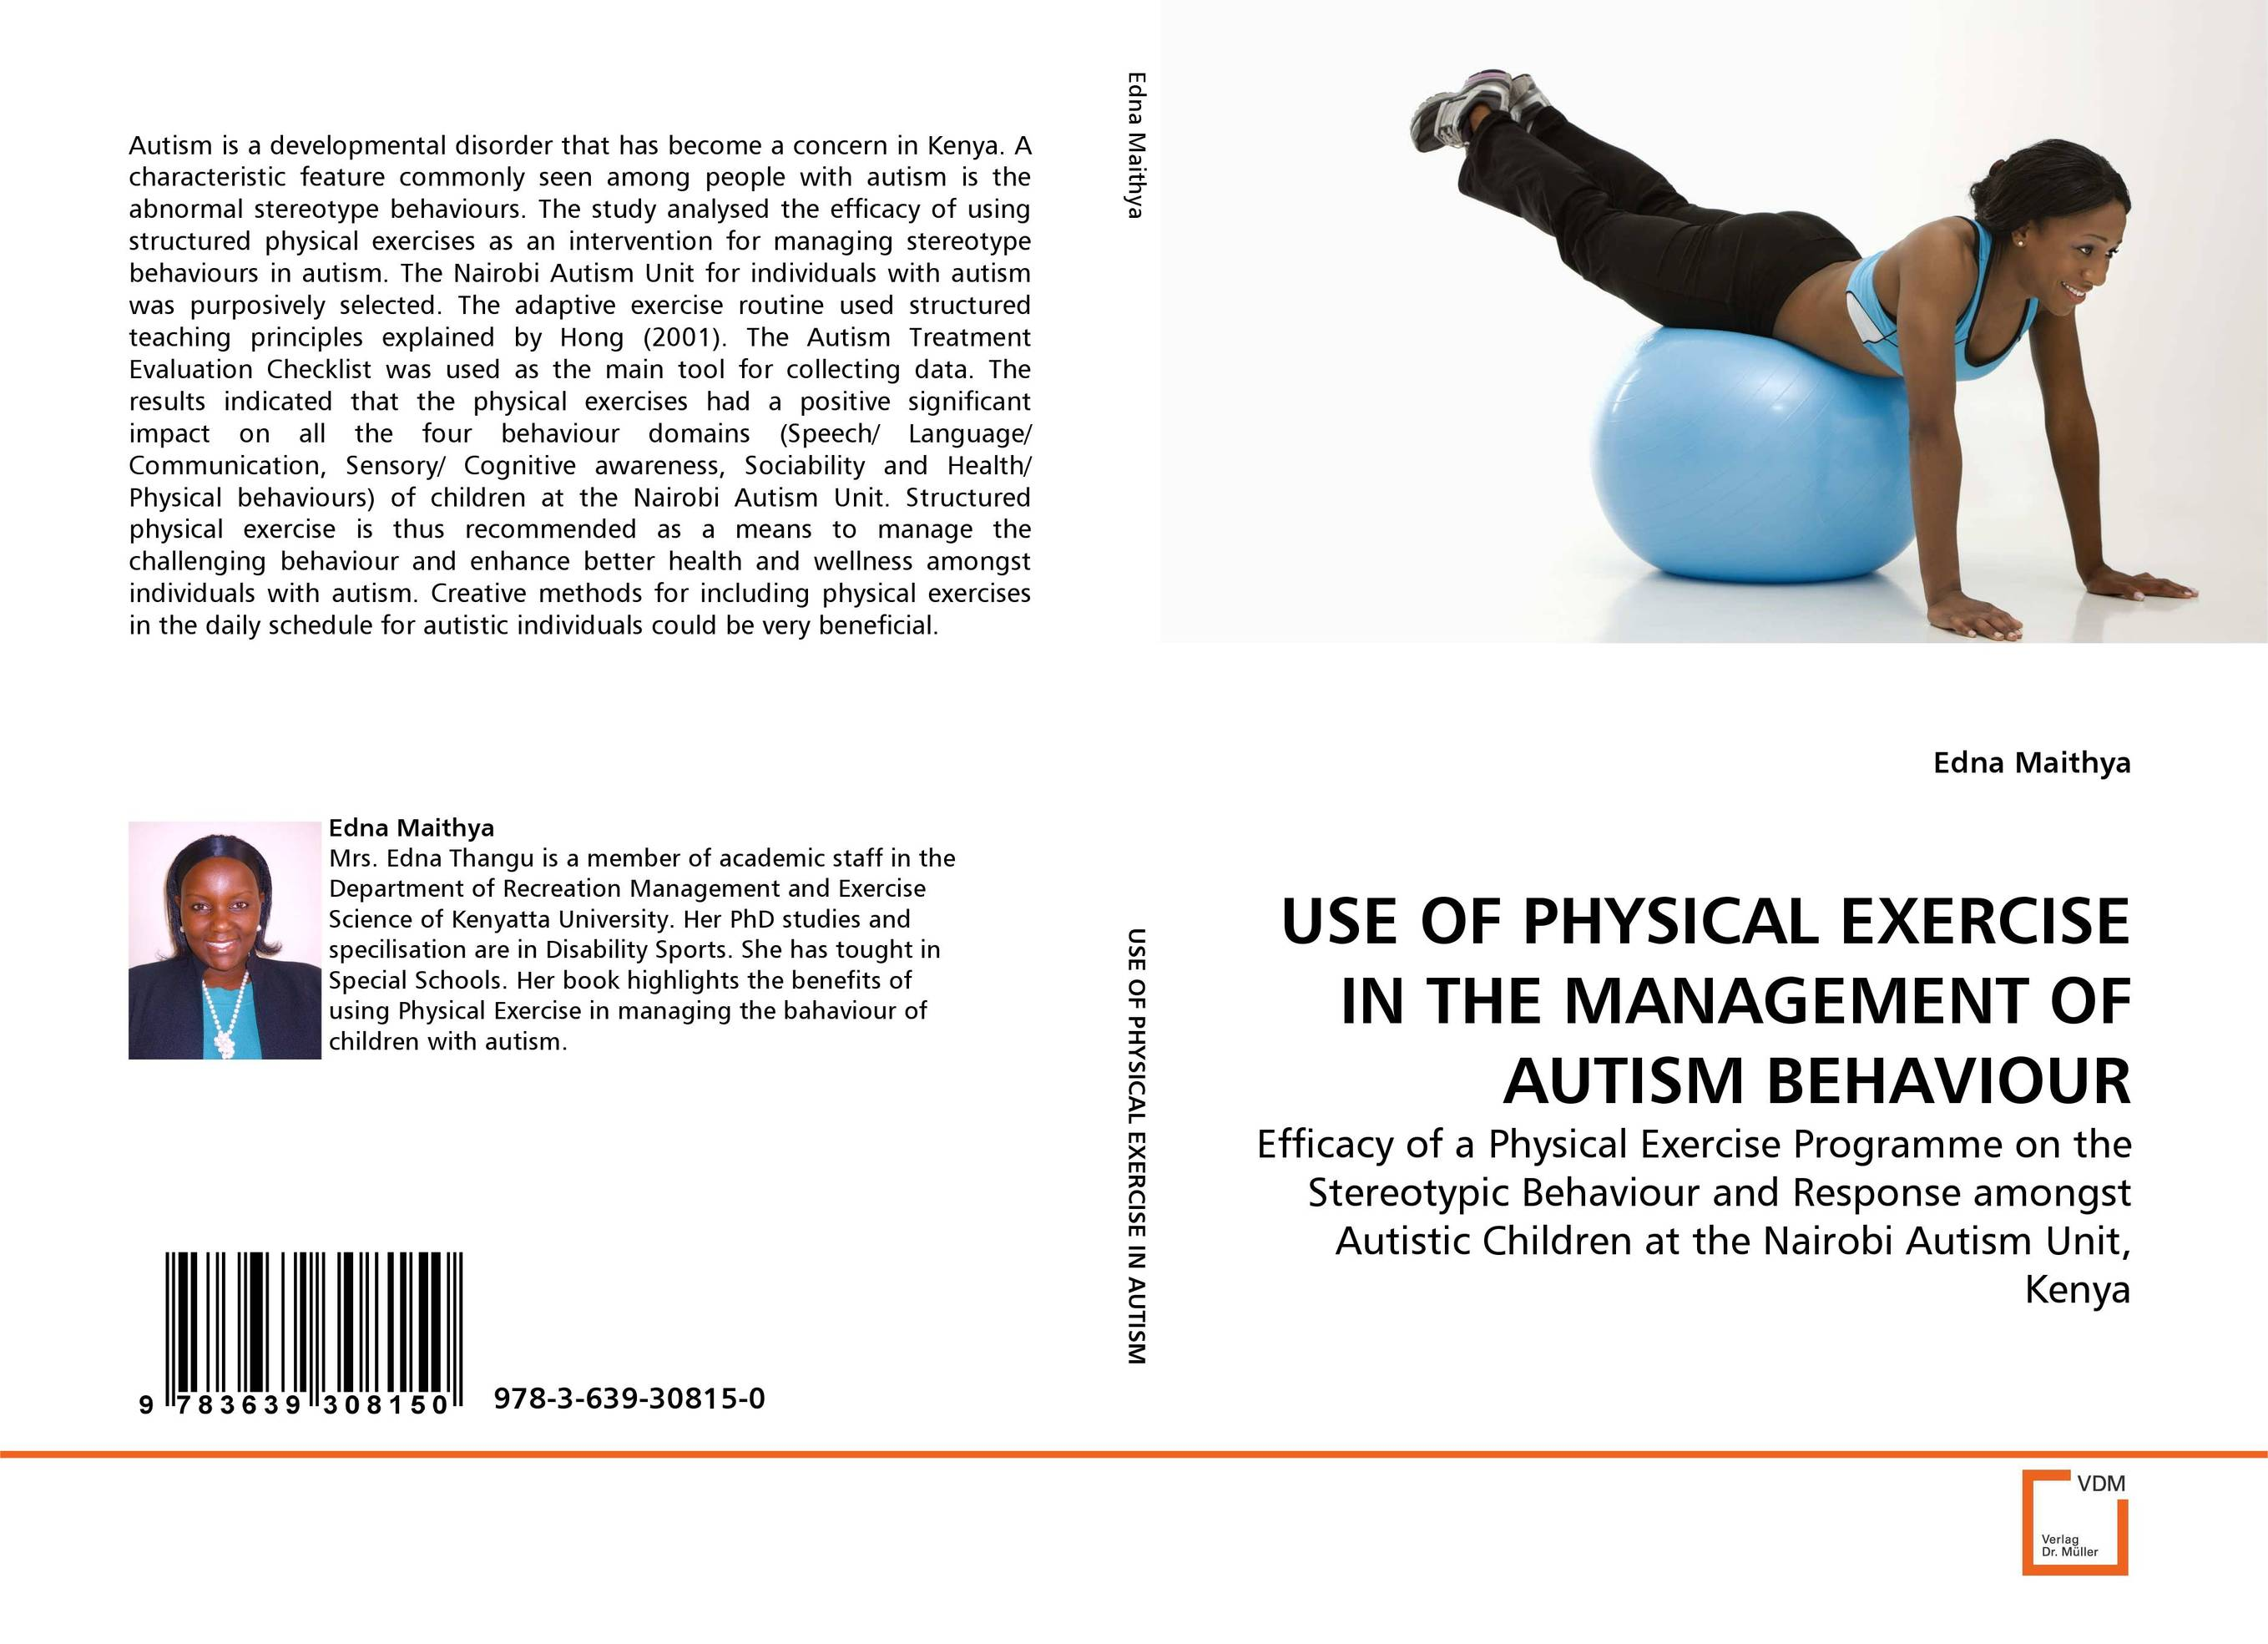 USE OF PHYSICAL EXERCISE IN THE MANAGEMENT OF AUTISM BEHAVIOUR effects of physical exercise on hypertension